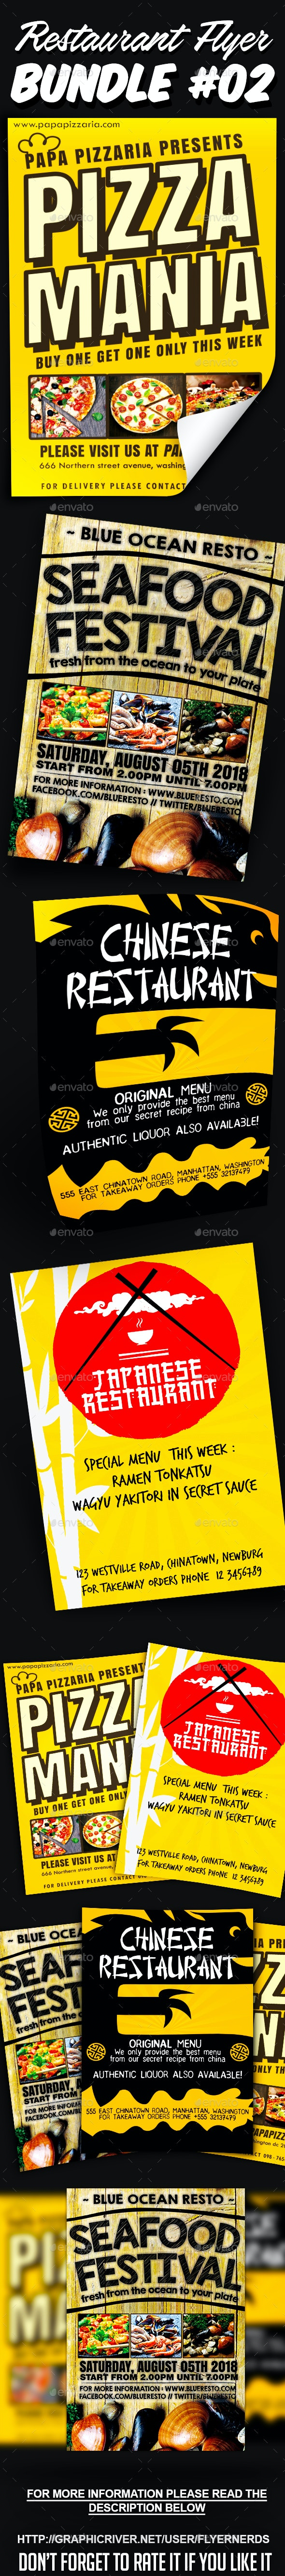 Restaurant Flyer Bundle 02 - Restaurant Flyers